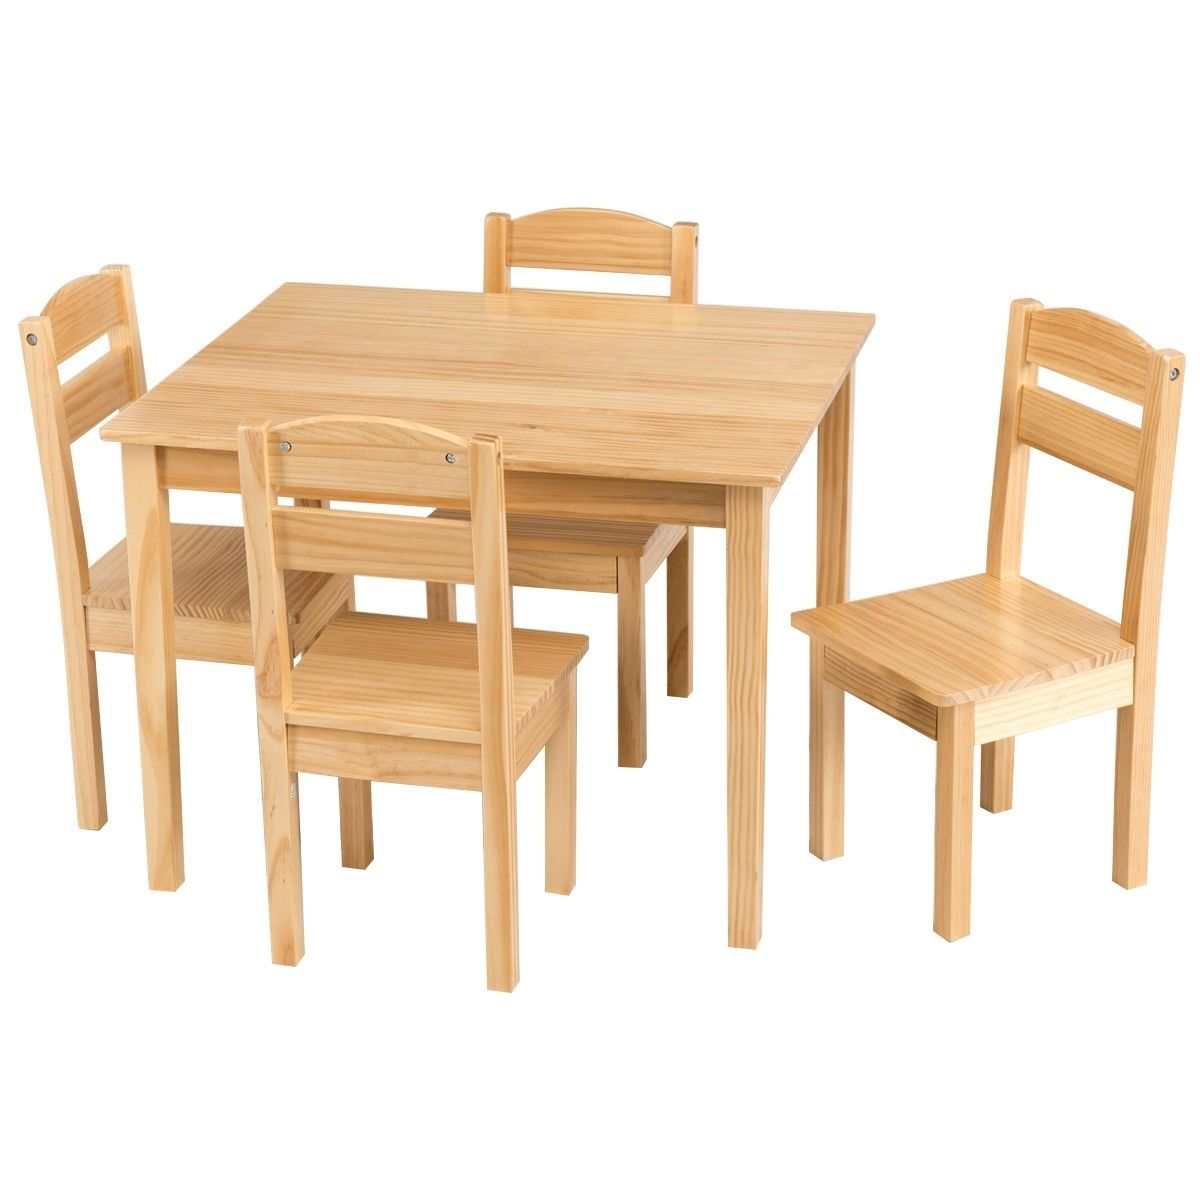 5 Pcs Kids Pine Wood Table Chair Set 84 95 Free Shipping This Child Sized Table Chair Set Is A Perfect Kids Wooden Table Toddler Table Kids Table And Chairs